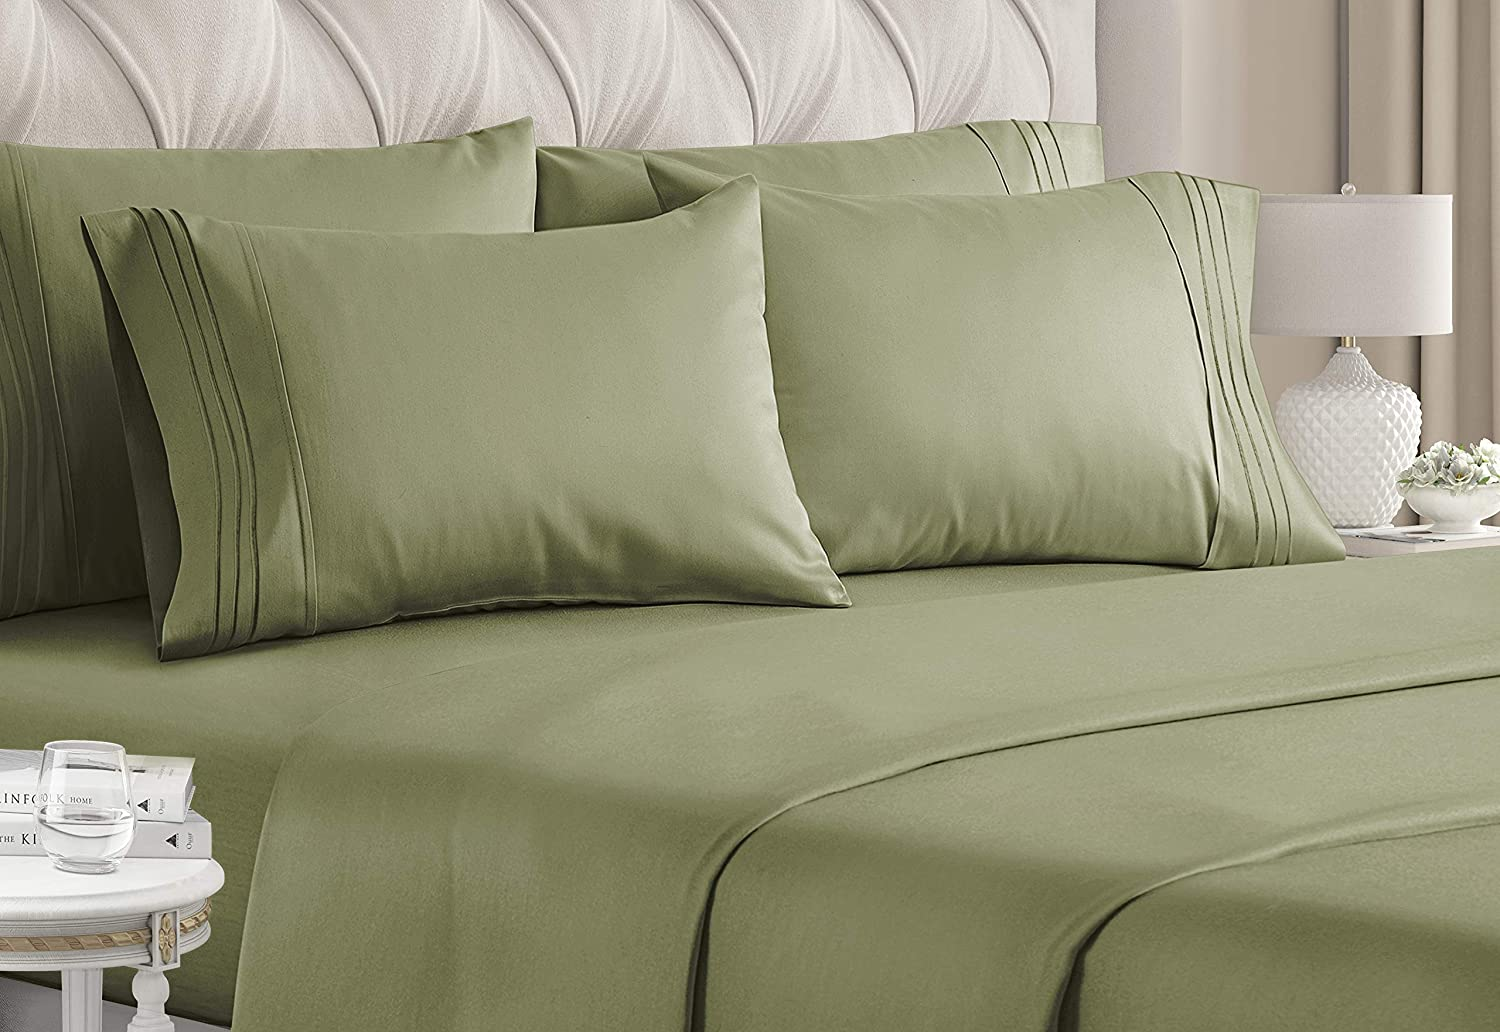 Queen excellence Size Sheet Set - 6 Bed Sheets E Piece Max 45% OFF Hotel Luxury